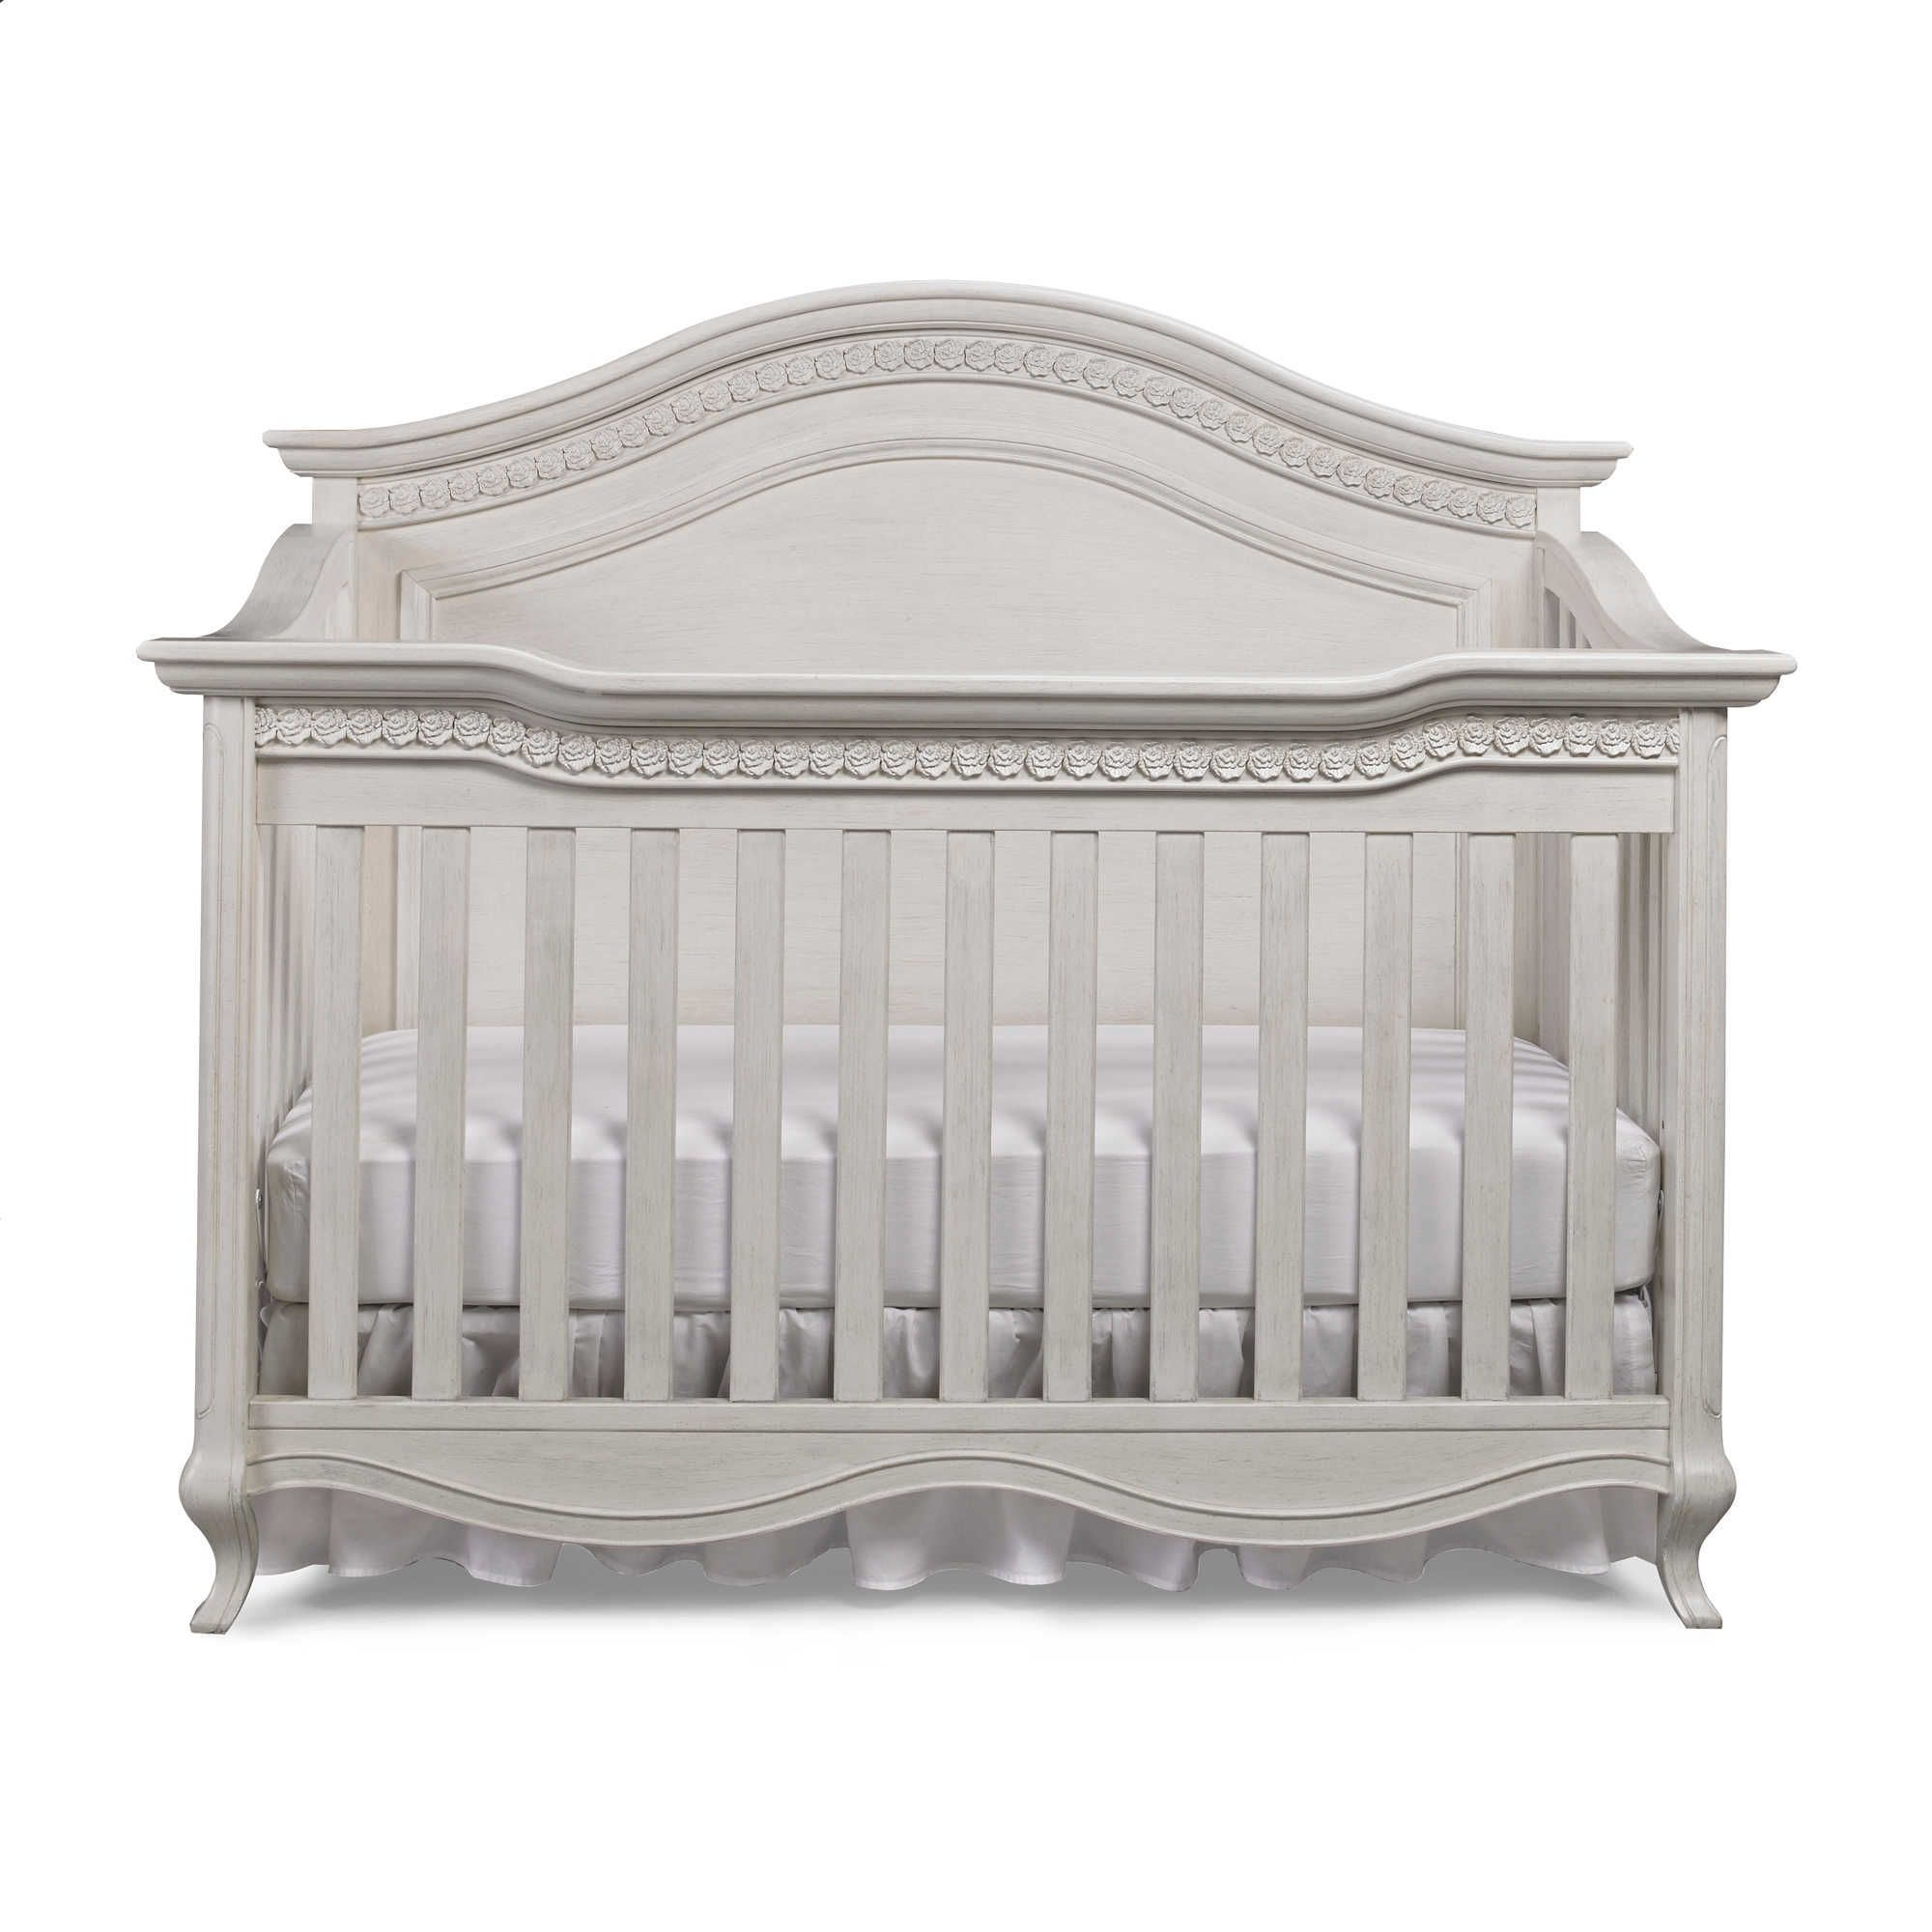 Crib for sale gatineau - Bel Amore Lyla Rose 4 In 1 Convertible Crib In White Willow